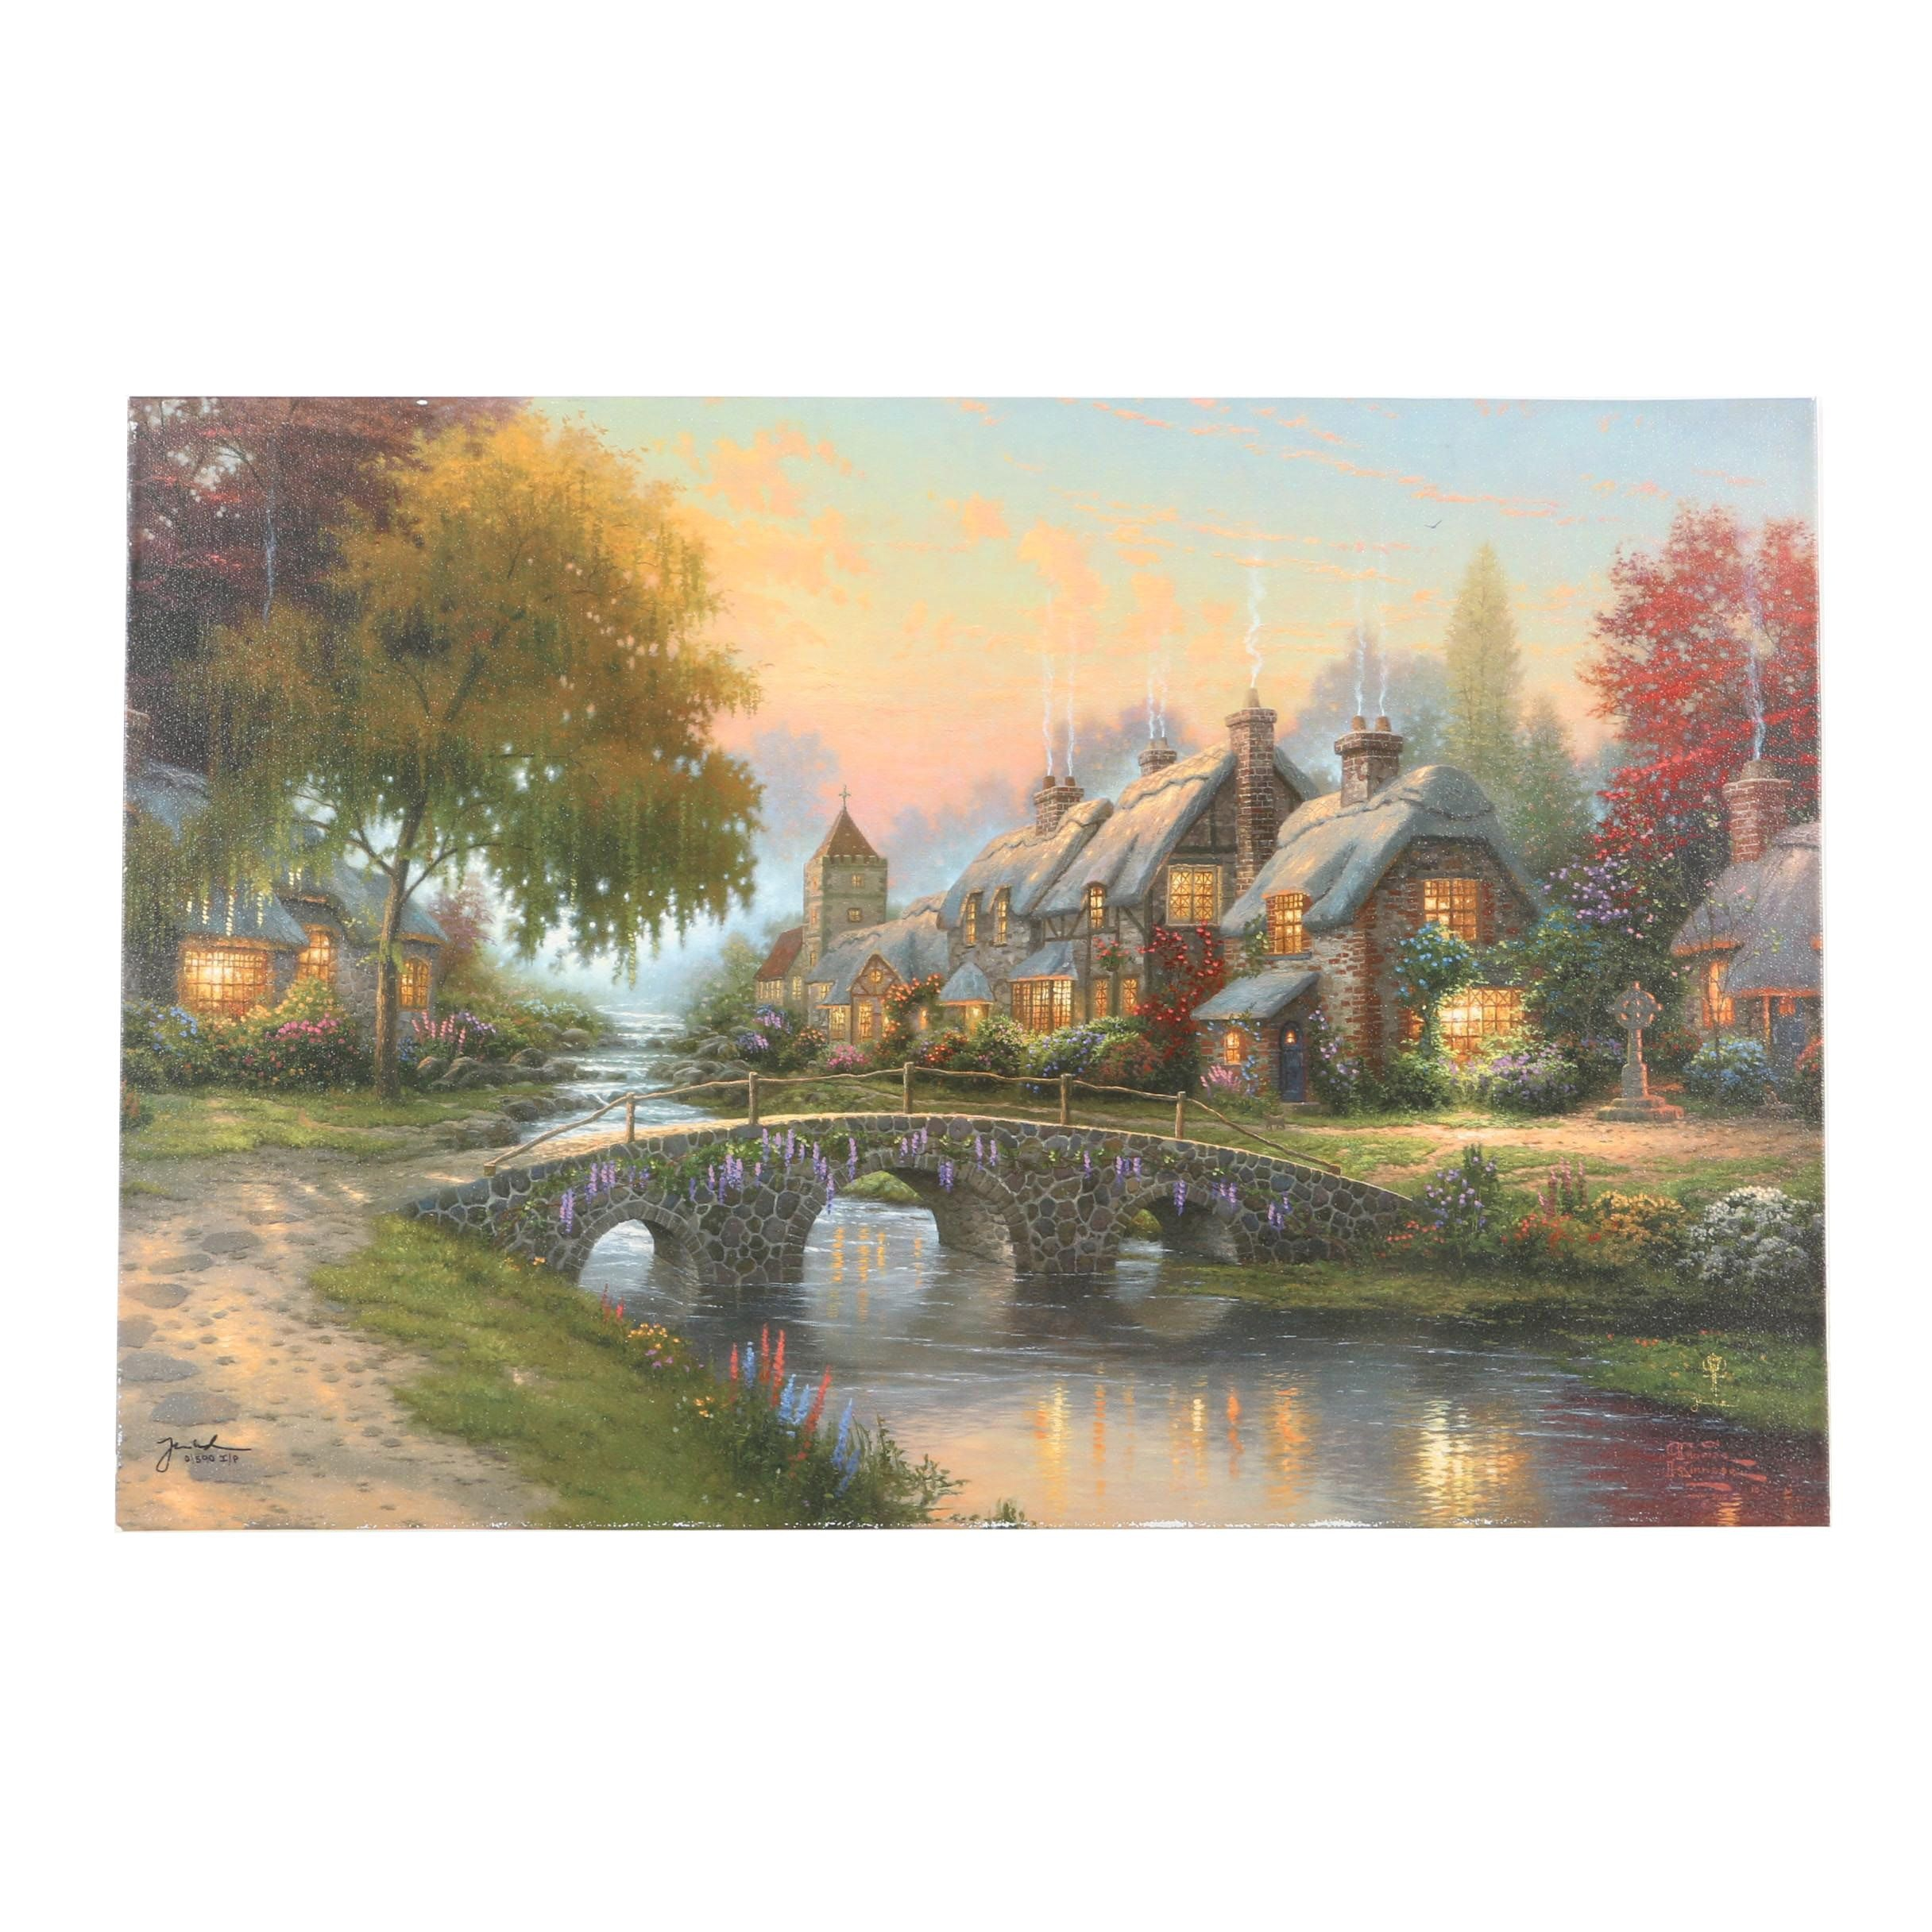 "Thomas Kinkade Limited Edition Offset Lithograph on Canvas ""Cobblestone Bridge"""